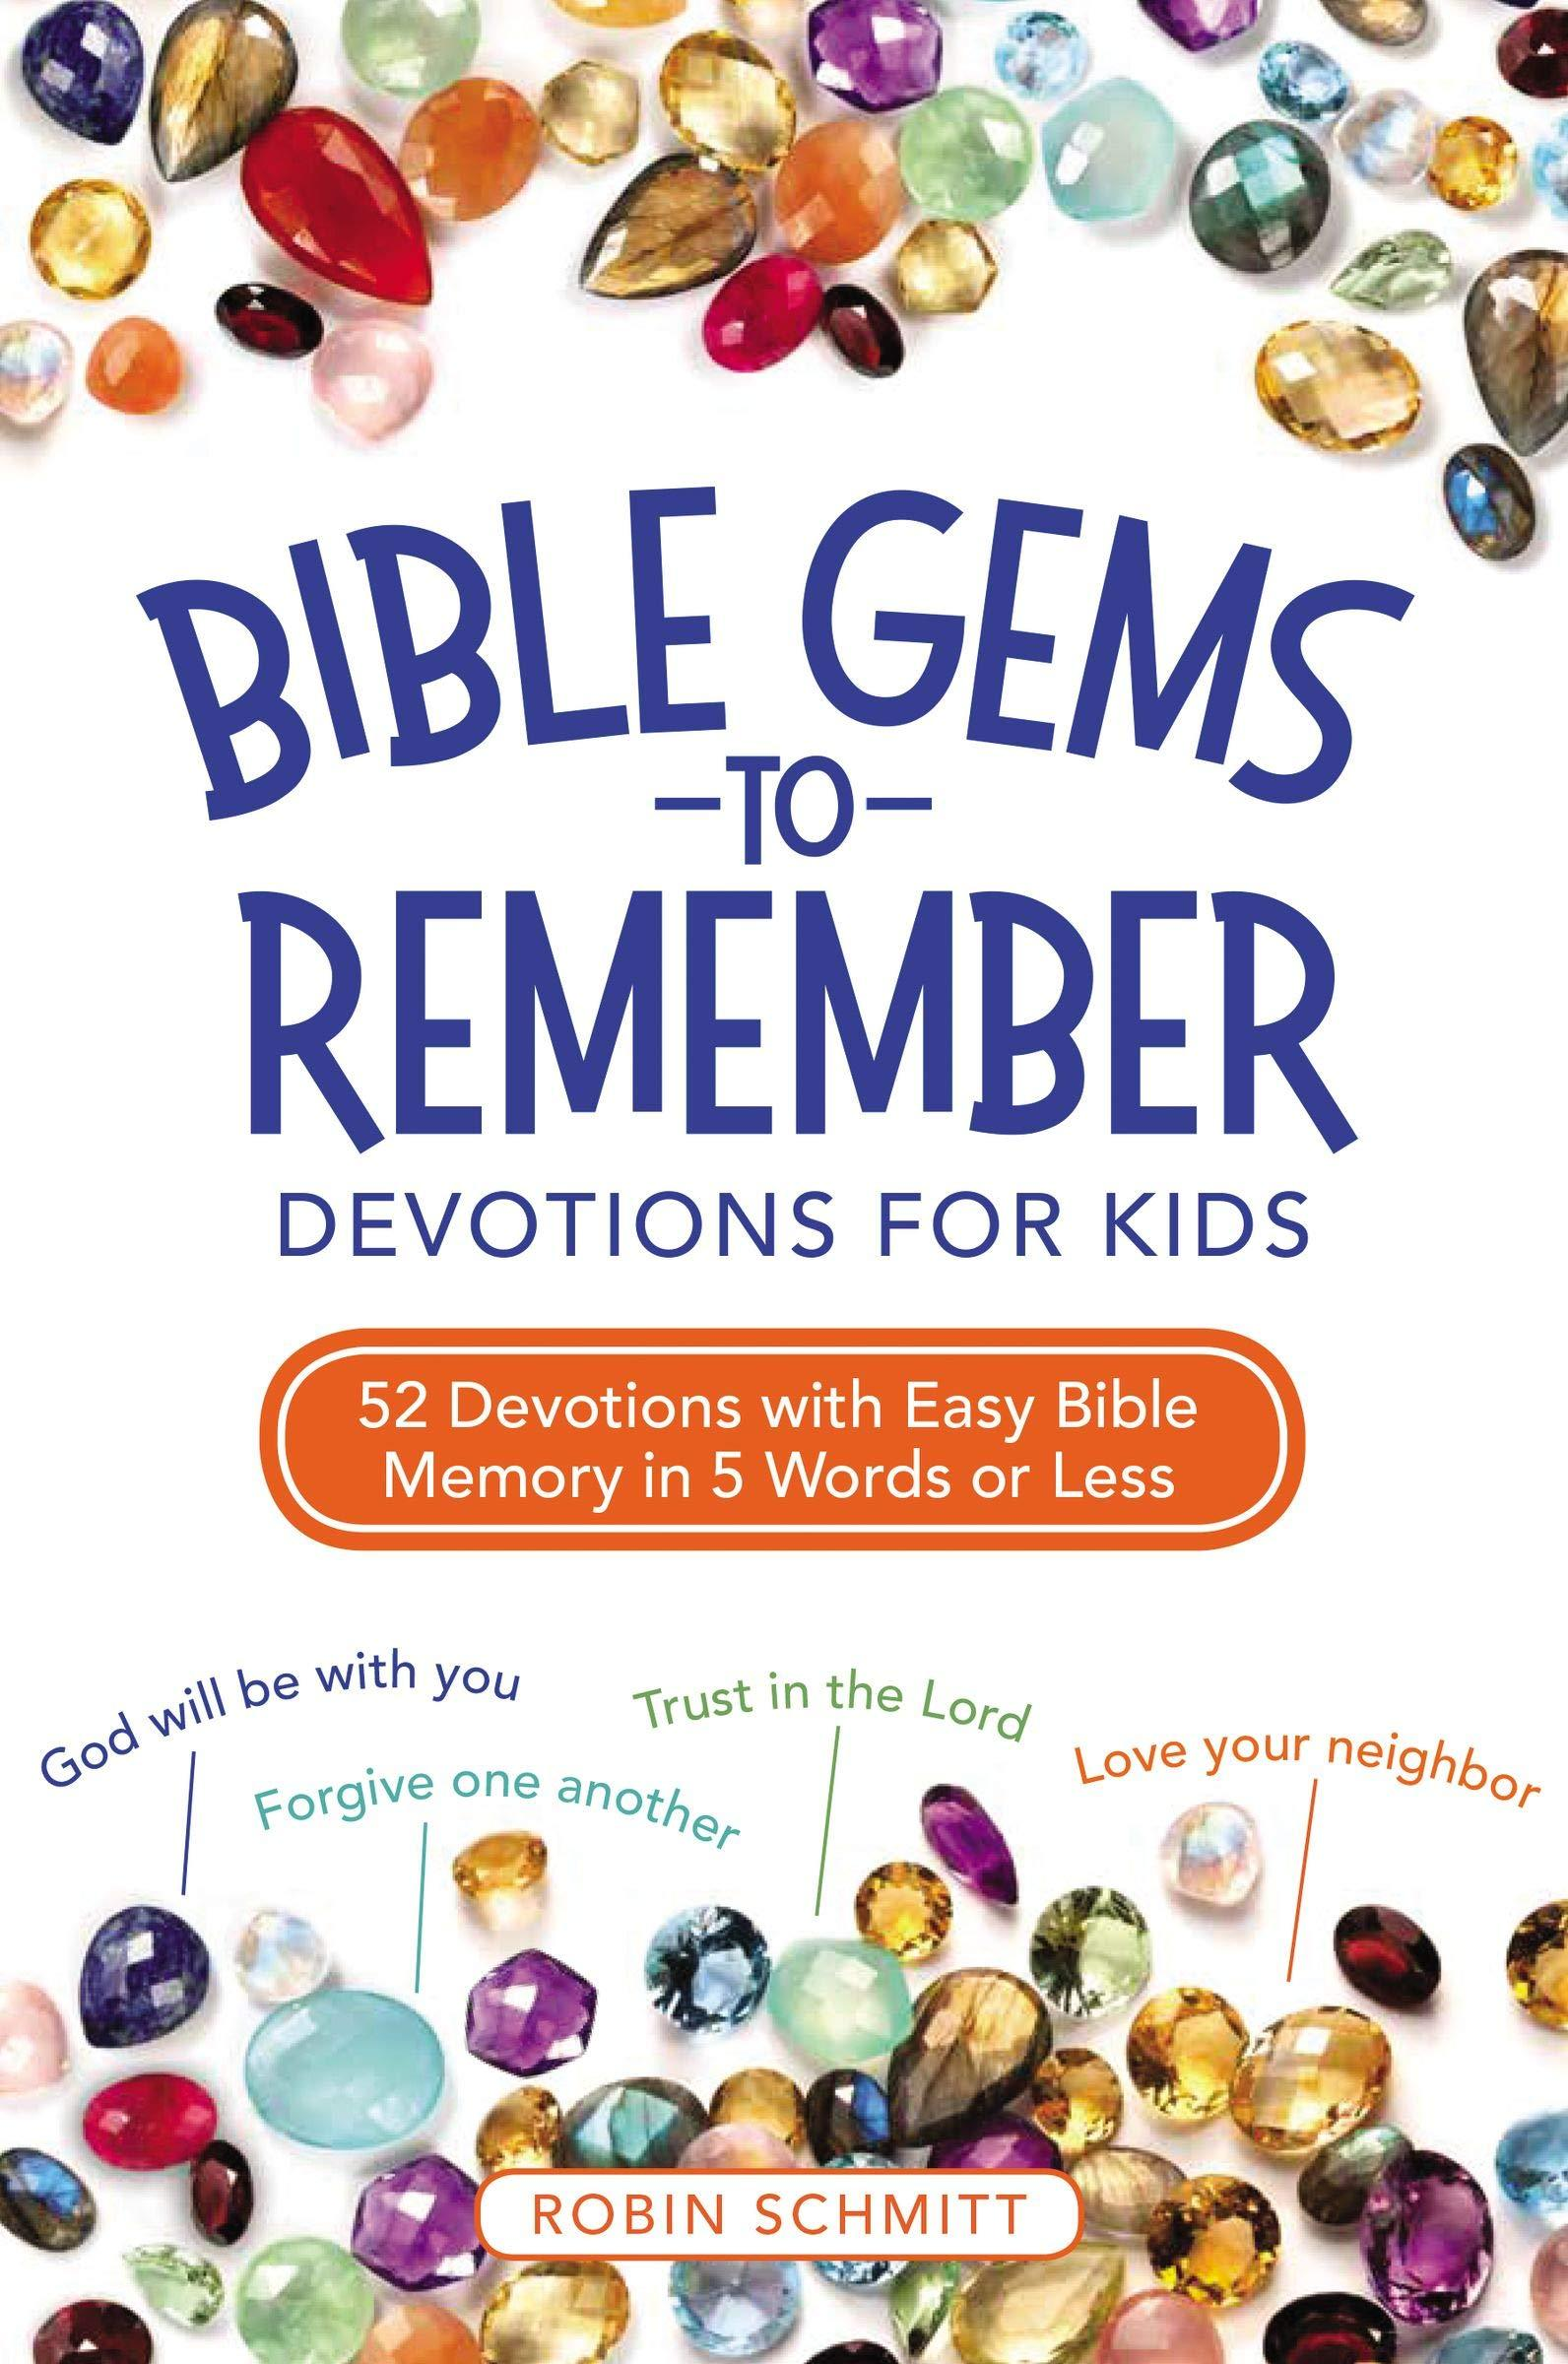 ROCKONLINE | New Creation Church | NCC | Joseph Prince | ROCK Bookshop | ROCK Bookstore | Star Vista | Christian | Children | Bible | Devotion | Bible Gems to Remember Devotions for Kids | Free Delivery for Singapore Orders above $50.